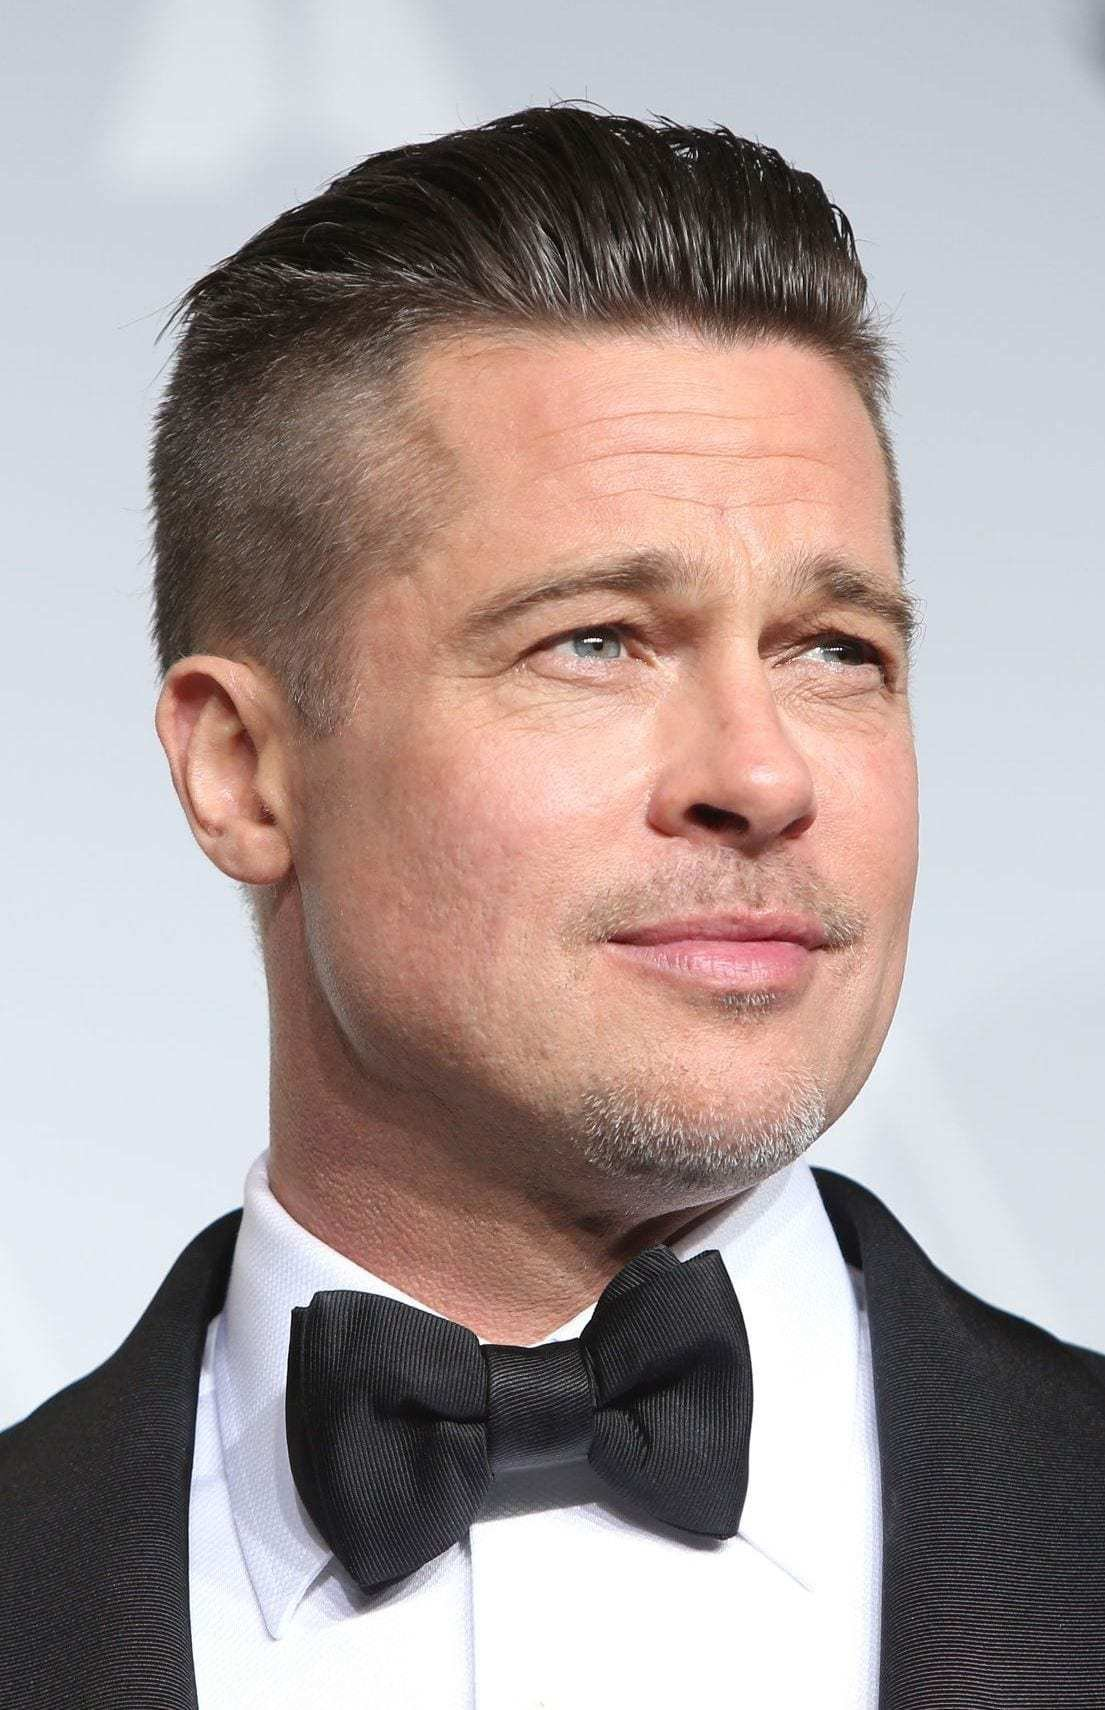 The Best Top 20 Elegant Haircuts For Guys With Square Faces Pictures